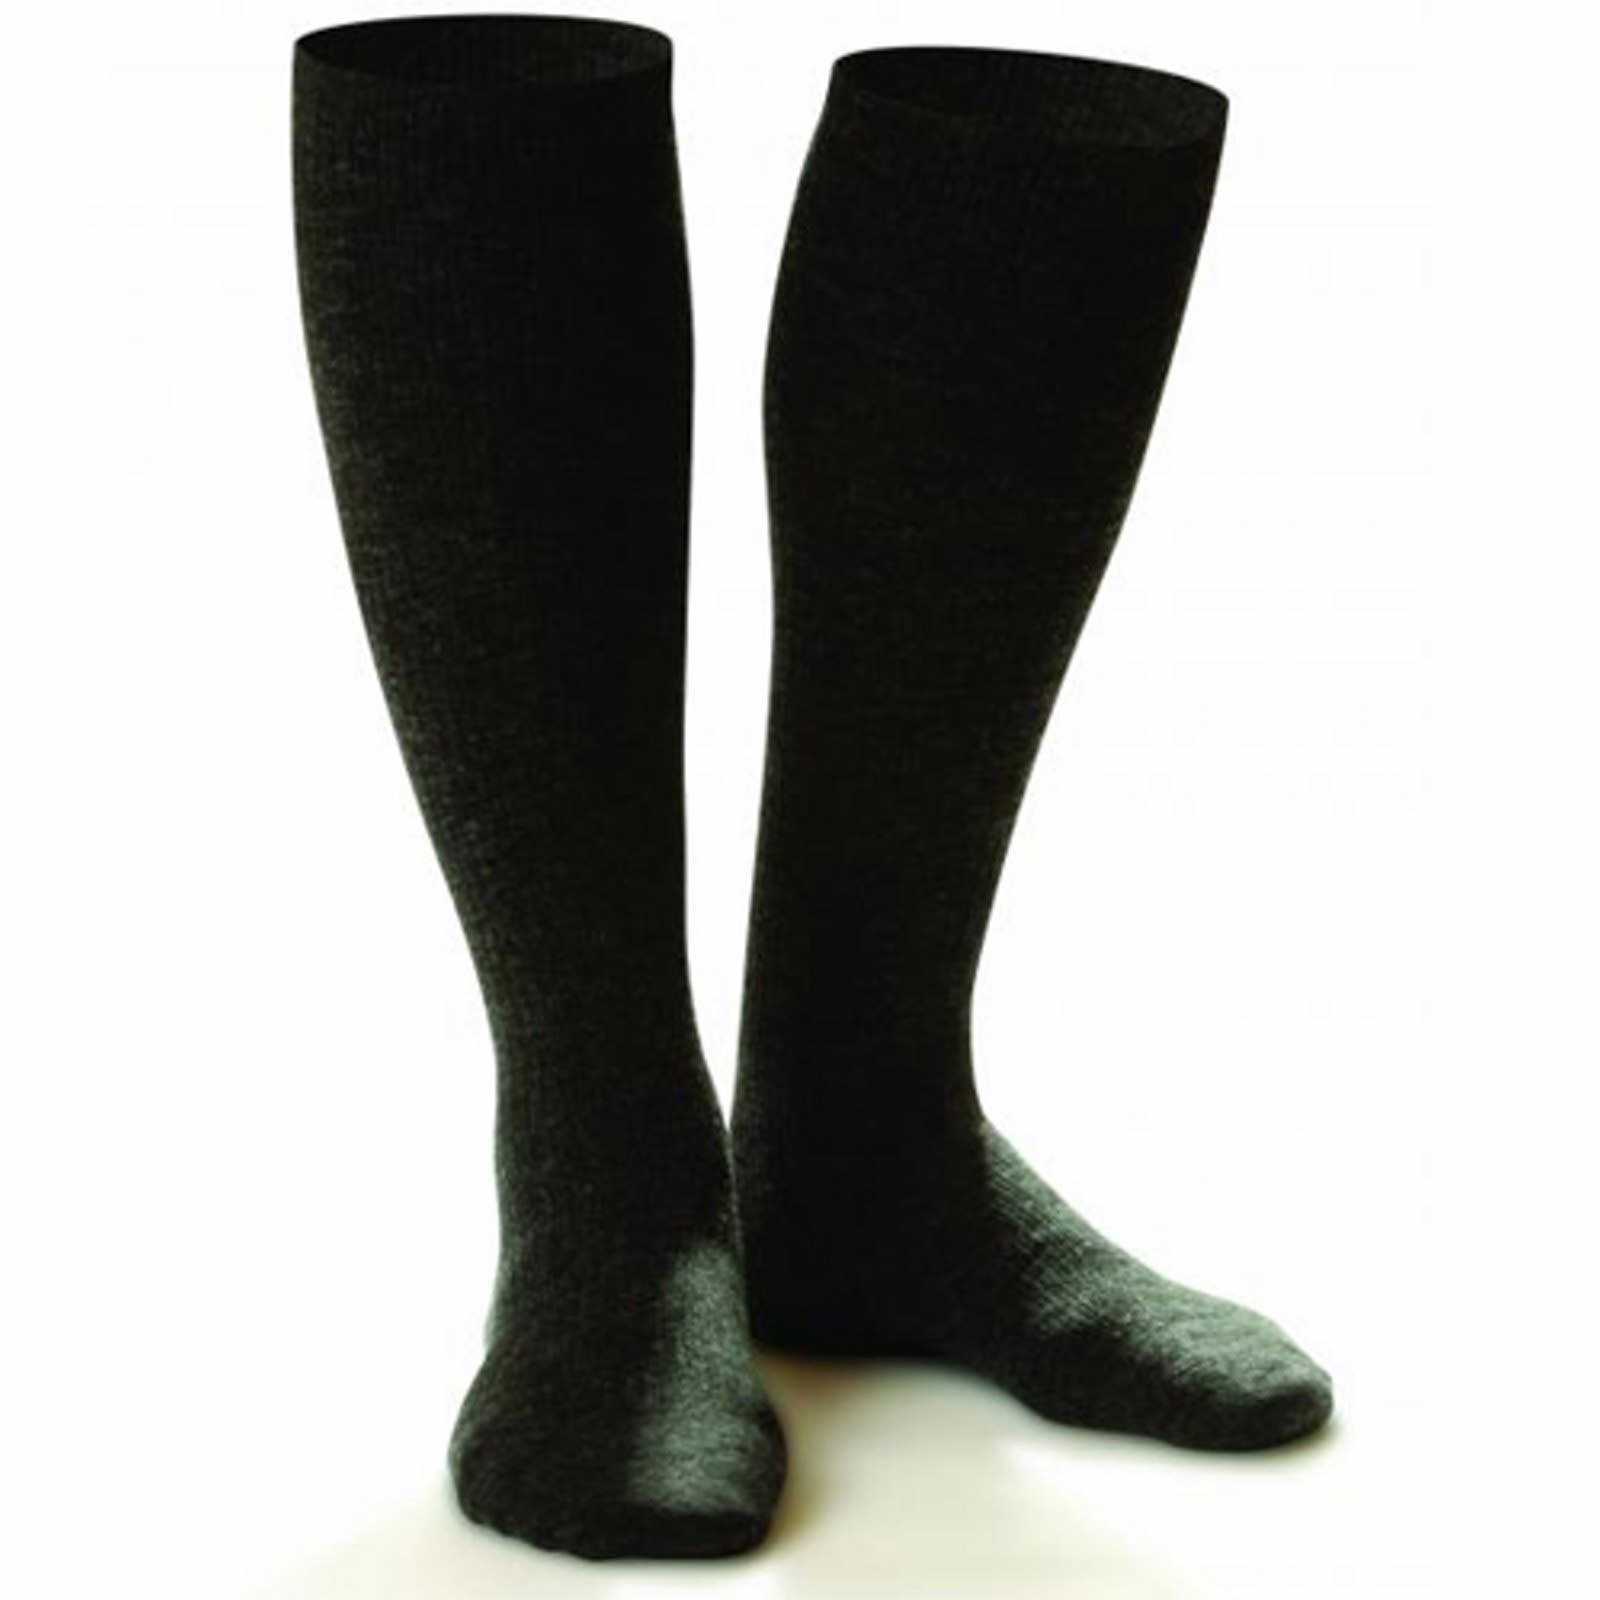 Dr. Comfort - Gentle Wool Dress Compression (10-15) Socks